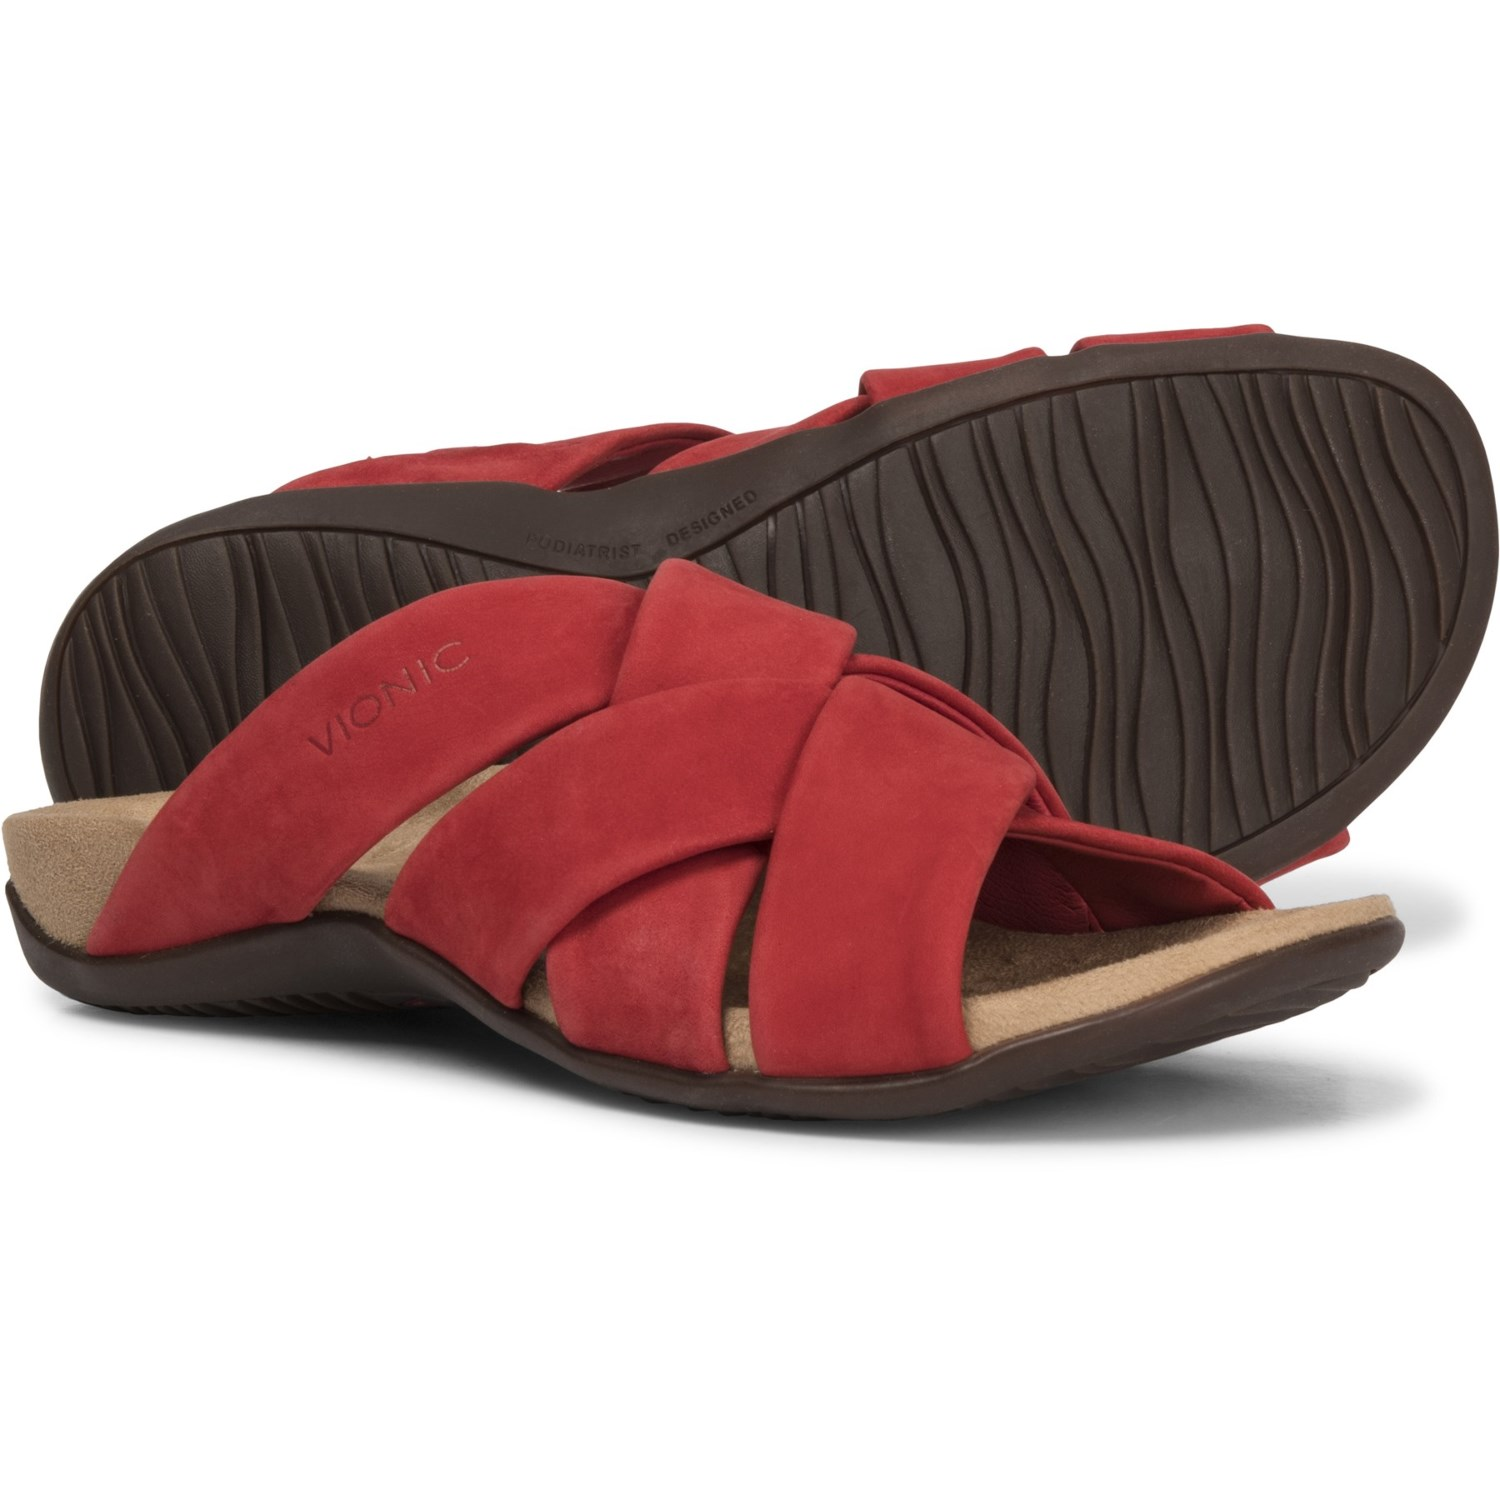 a91d465b526e Vionic Orthaheel Technology Juno Slide Sandals (For Women) in Cherry ...